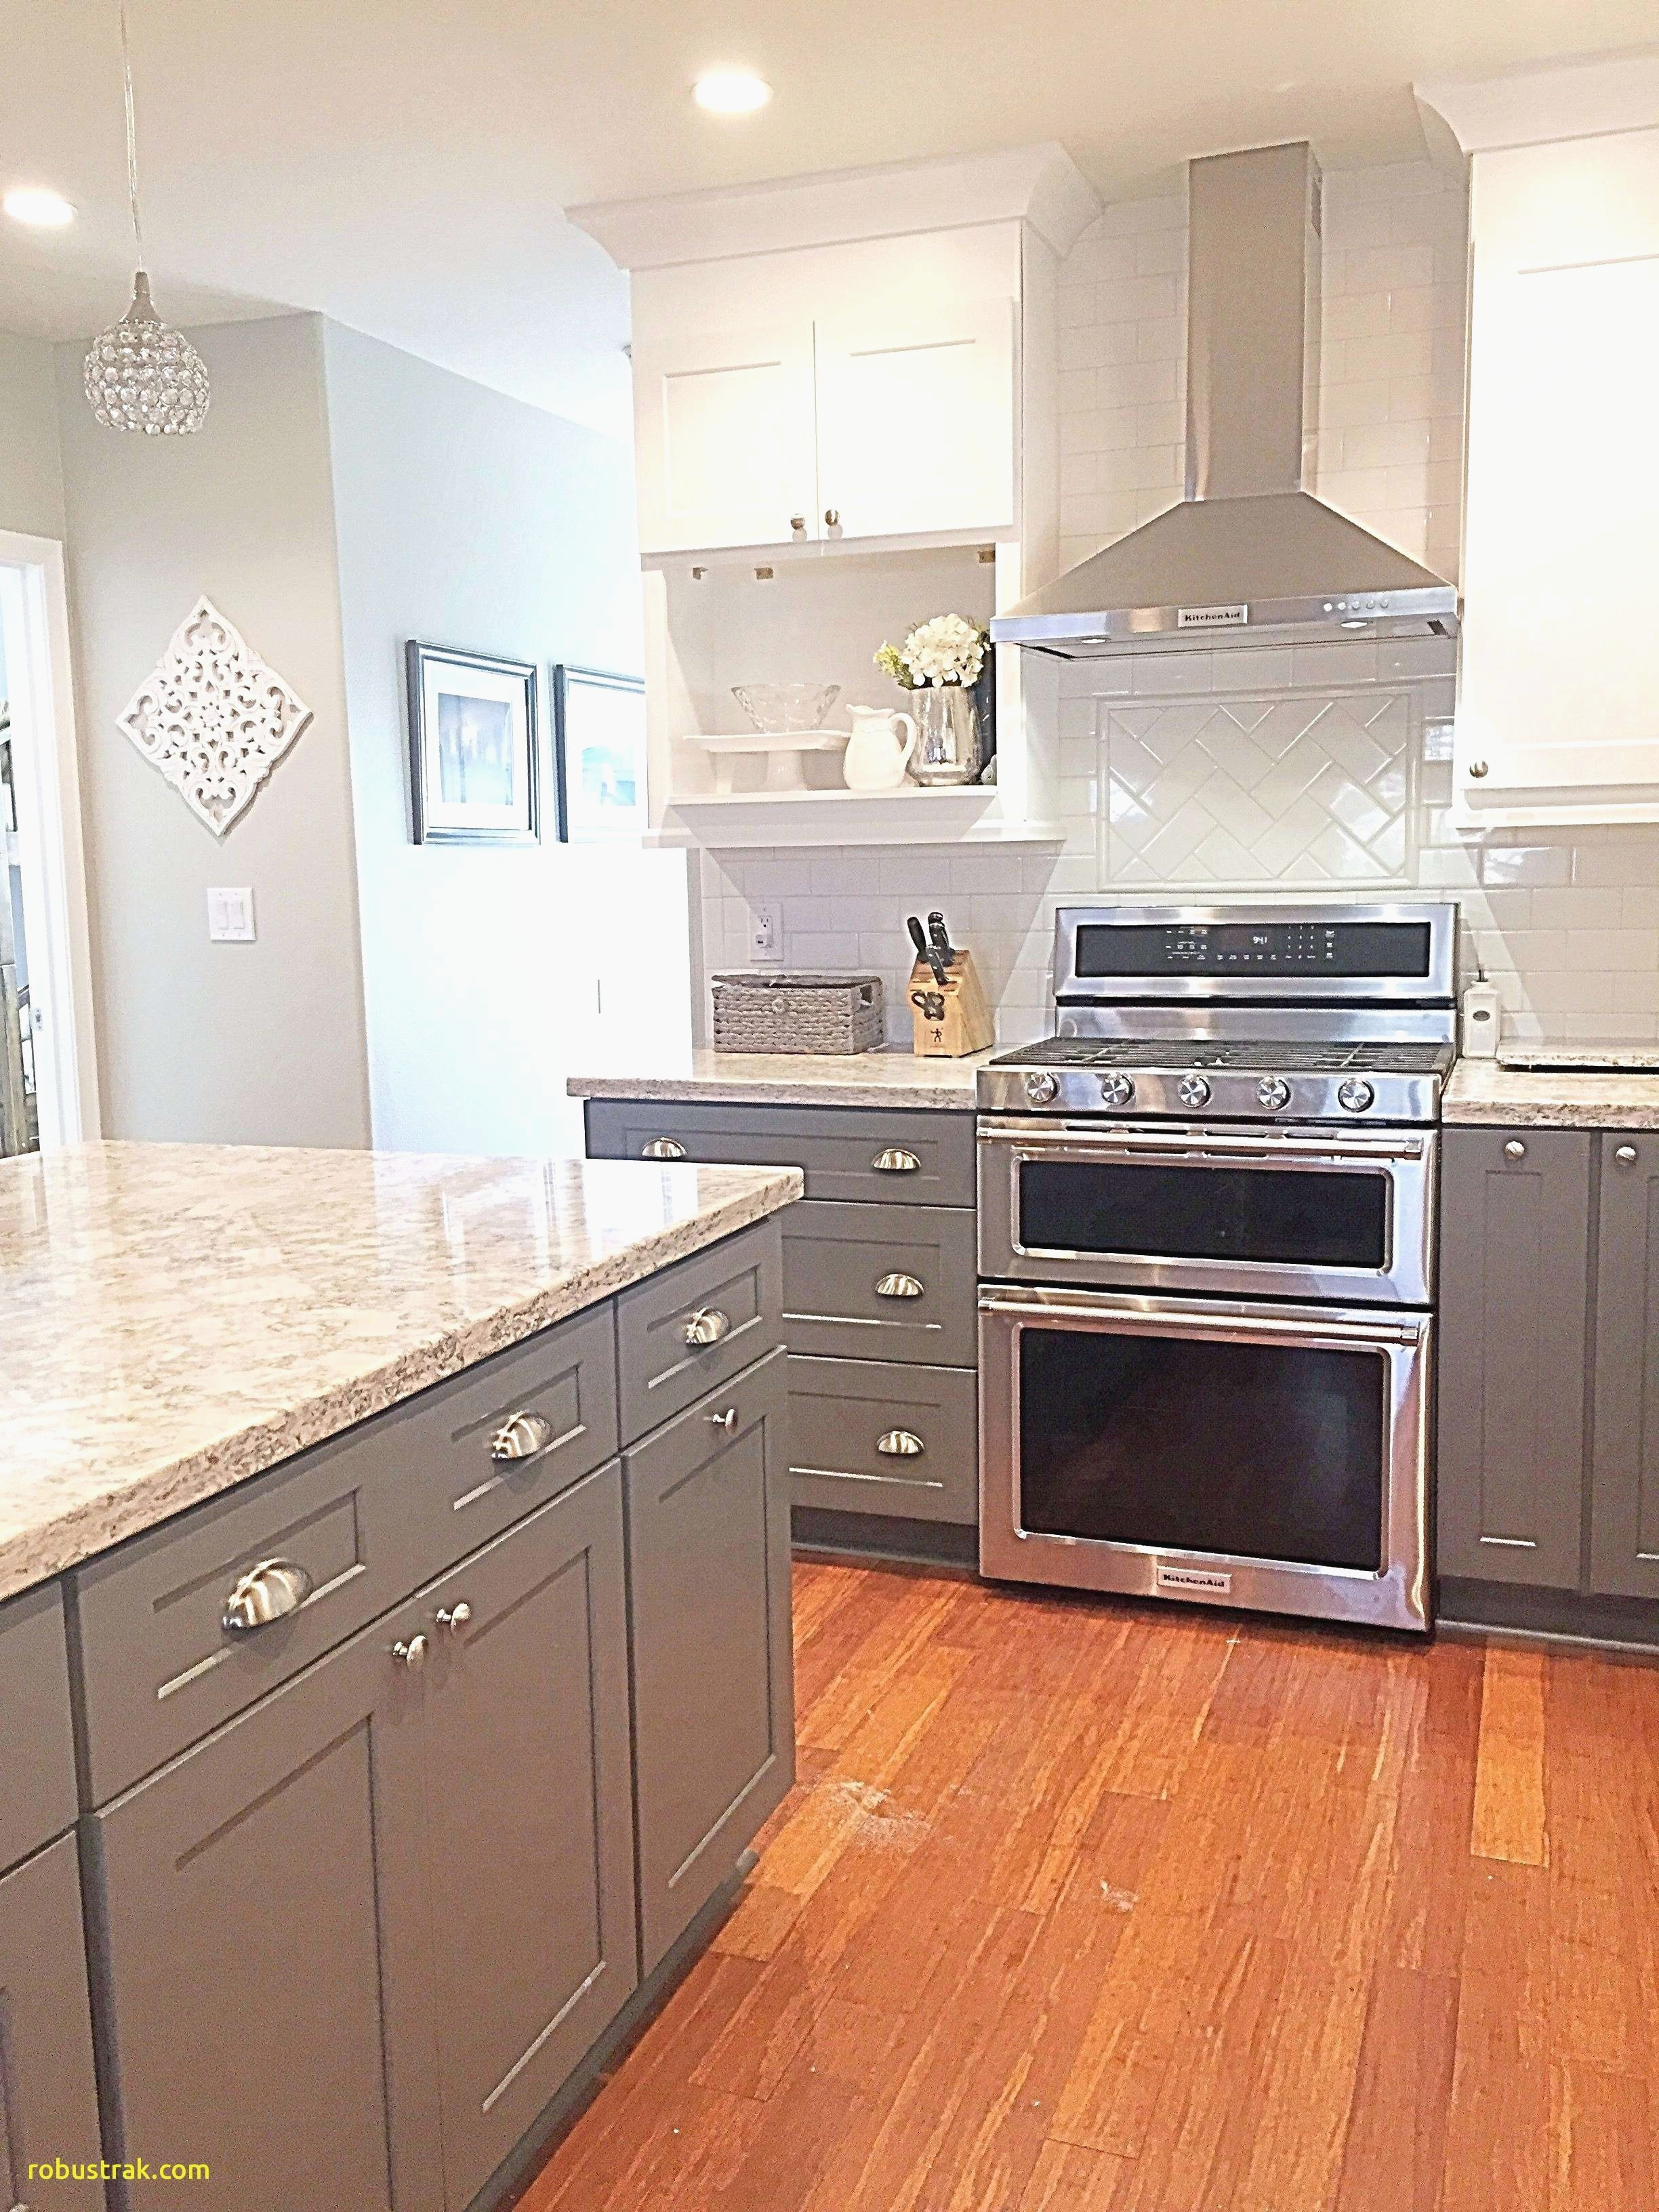 bruce hardwood floor cleaner lowes of 18 inspirational hardwood flooring stock dizpos com pertaining to hardwood flooring awesome the most kitchen cabinet wood colors stock home ideas pictures